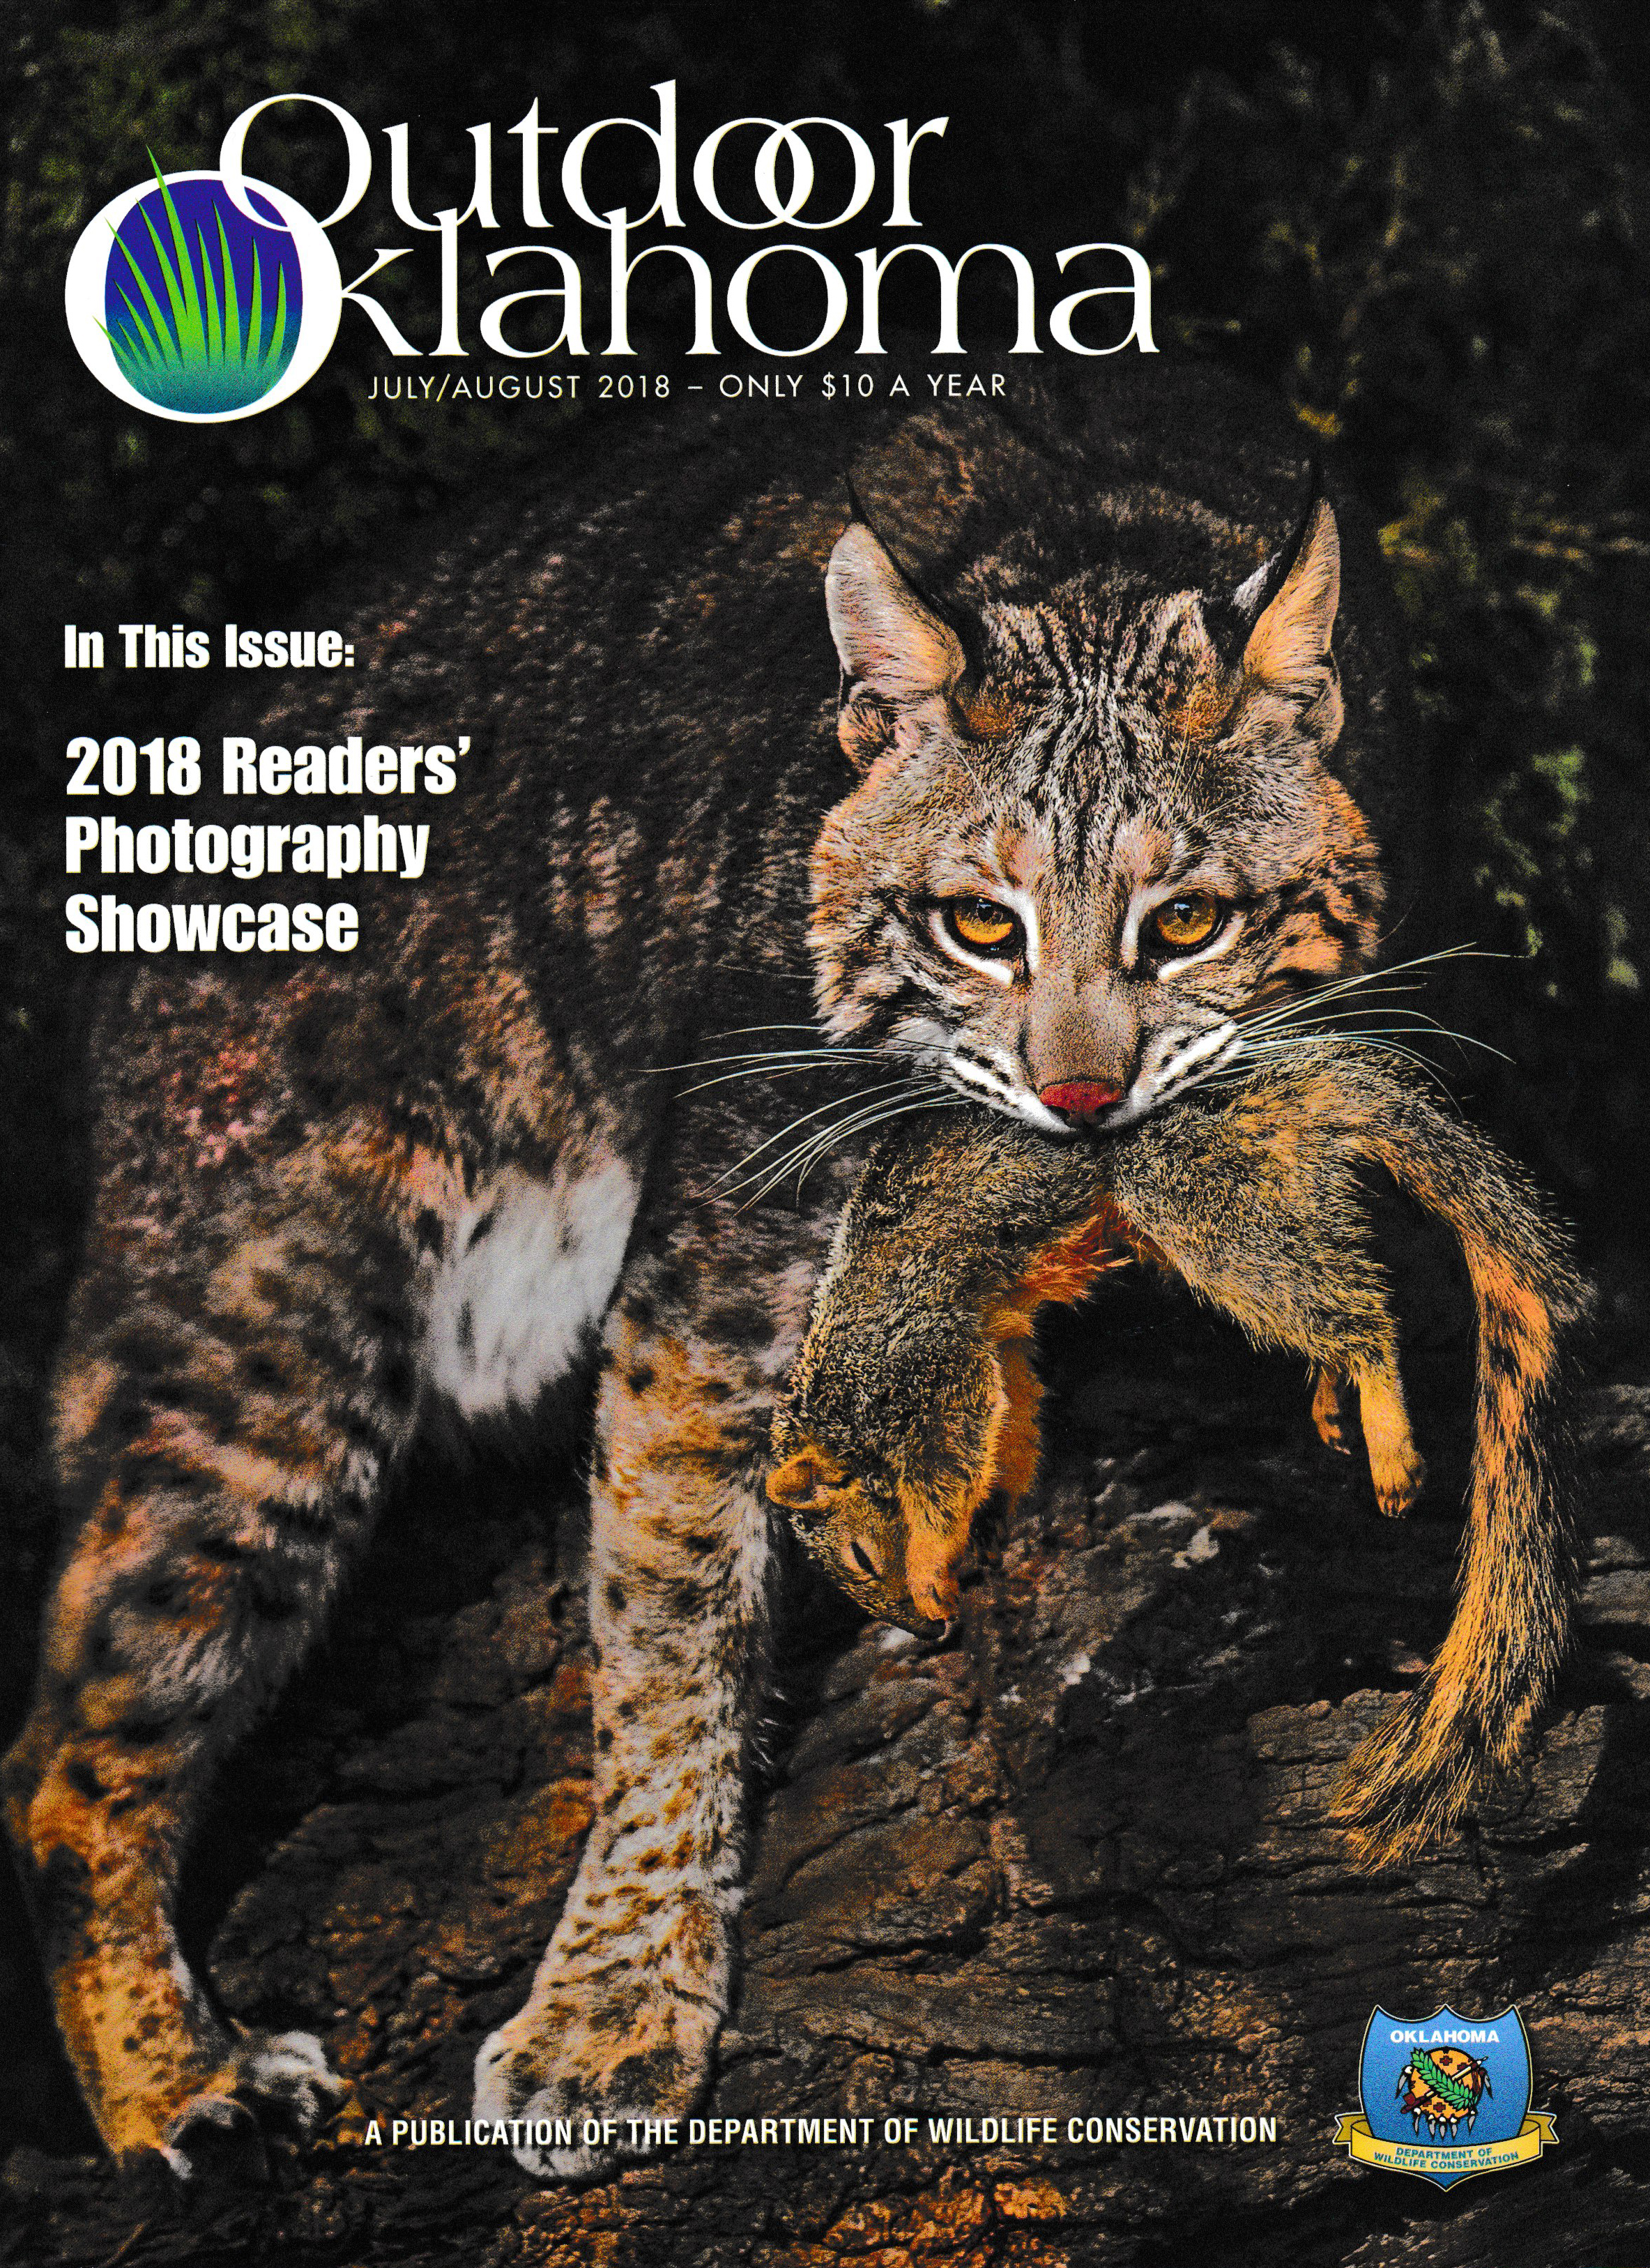 The cover of the July/August issue of Outdoor Oklahoma.(Not my photo)